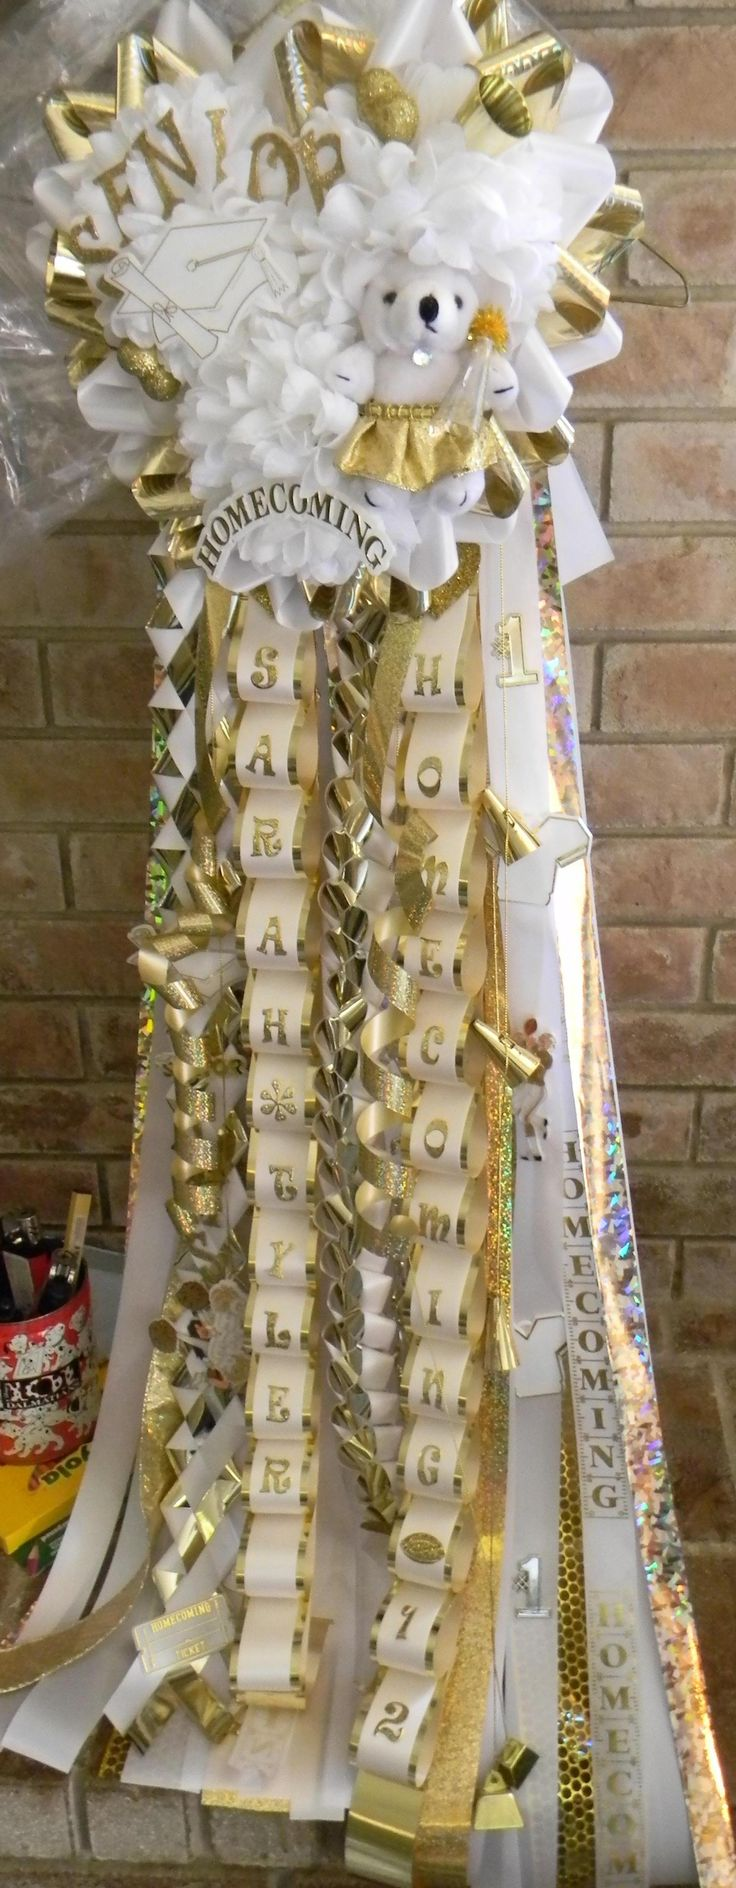 Senior Triple Homecoming Mum - I miss seeing these - not a thing they do up here in Montana -- homecoming mums large enough to topple a small cheerleader. Only in the south is this not even questioned. LOL!